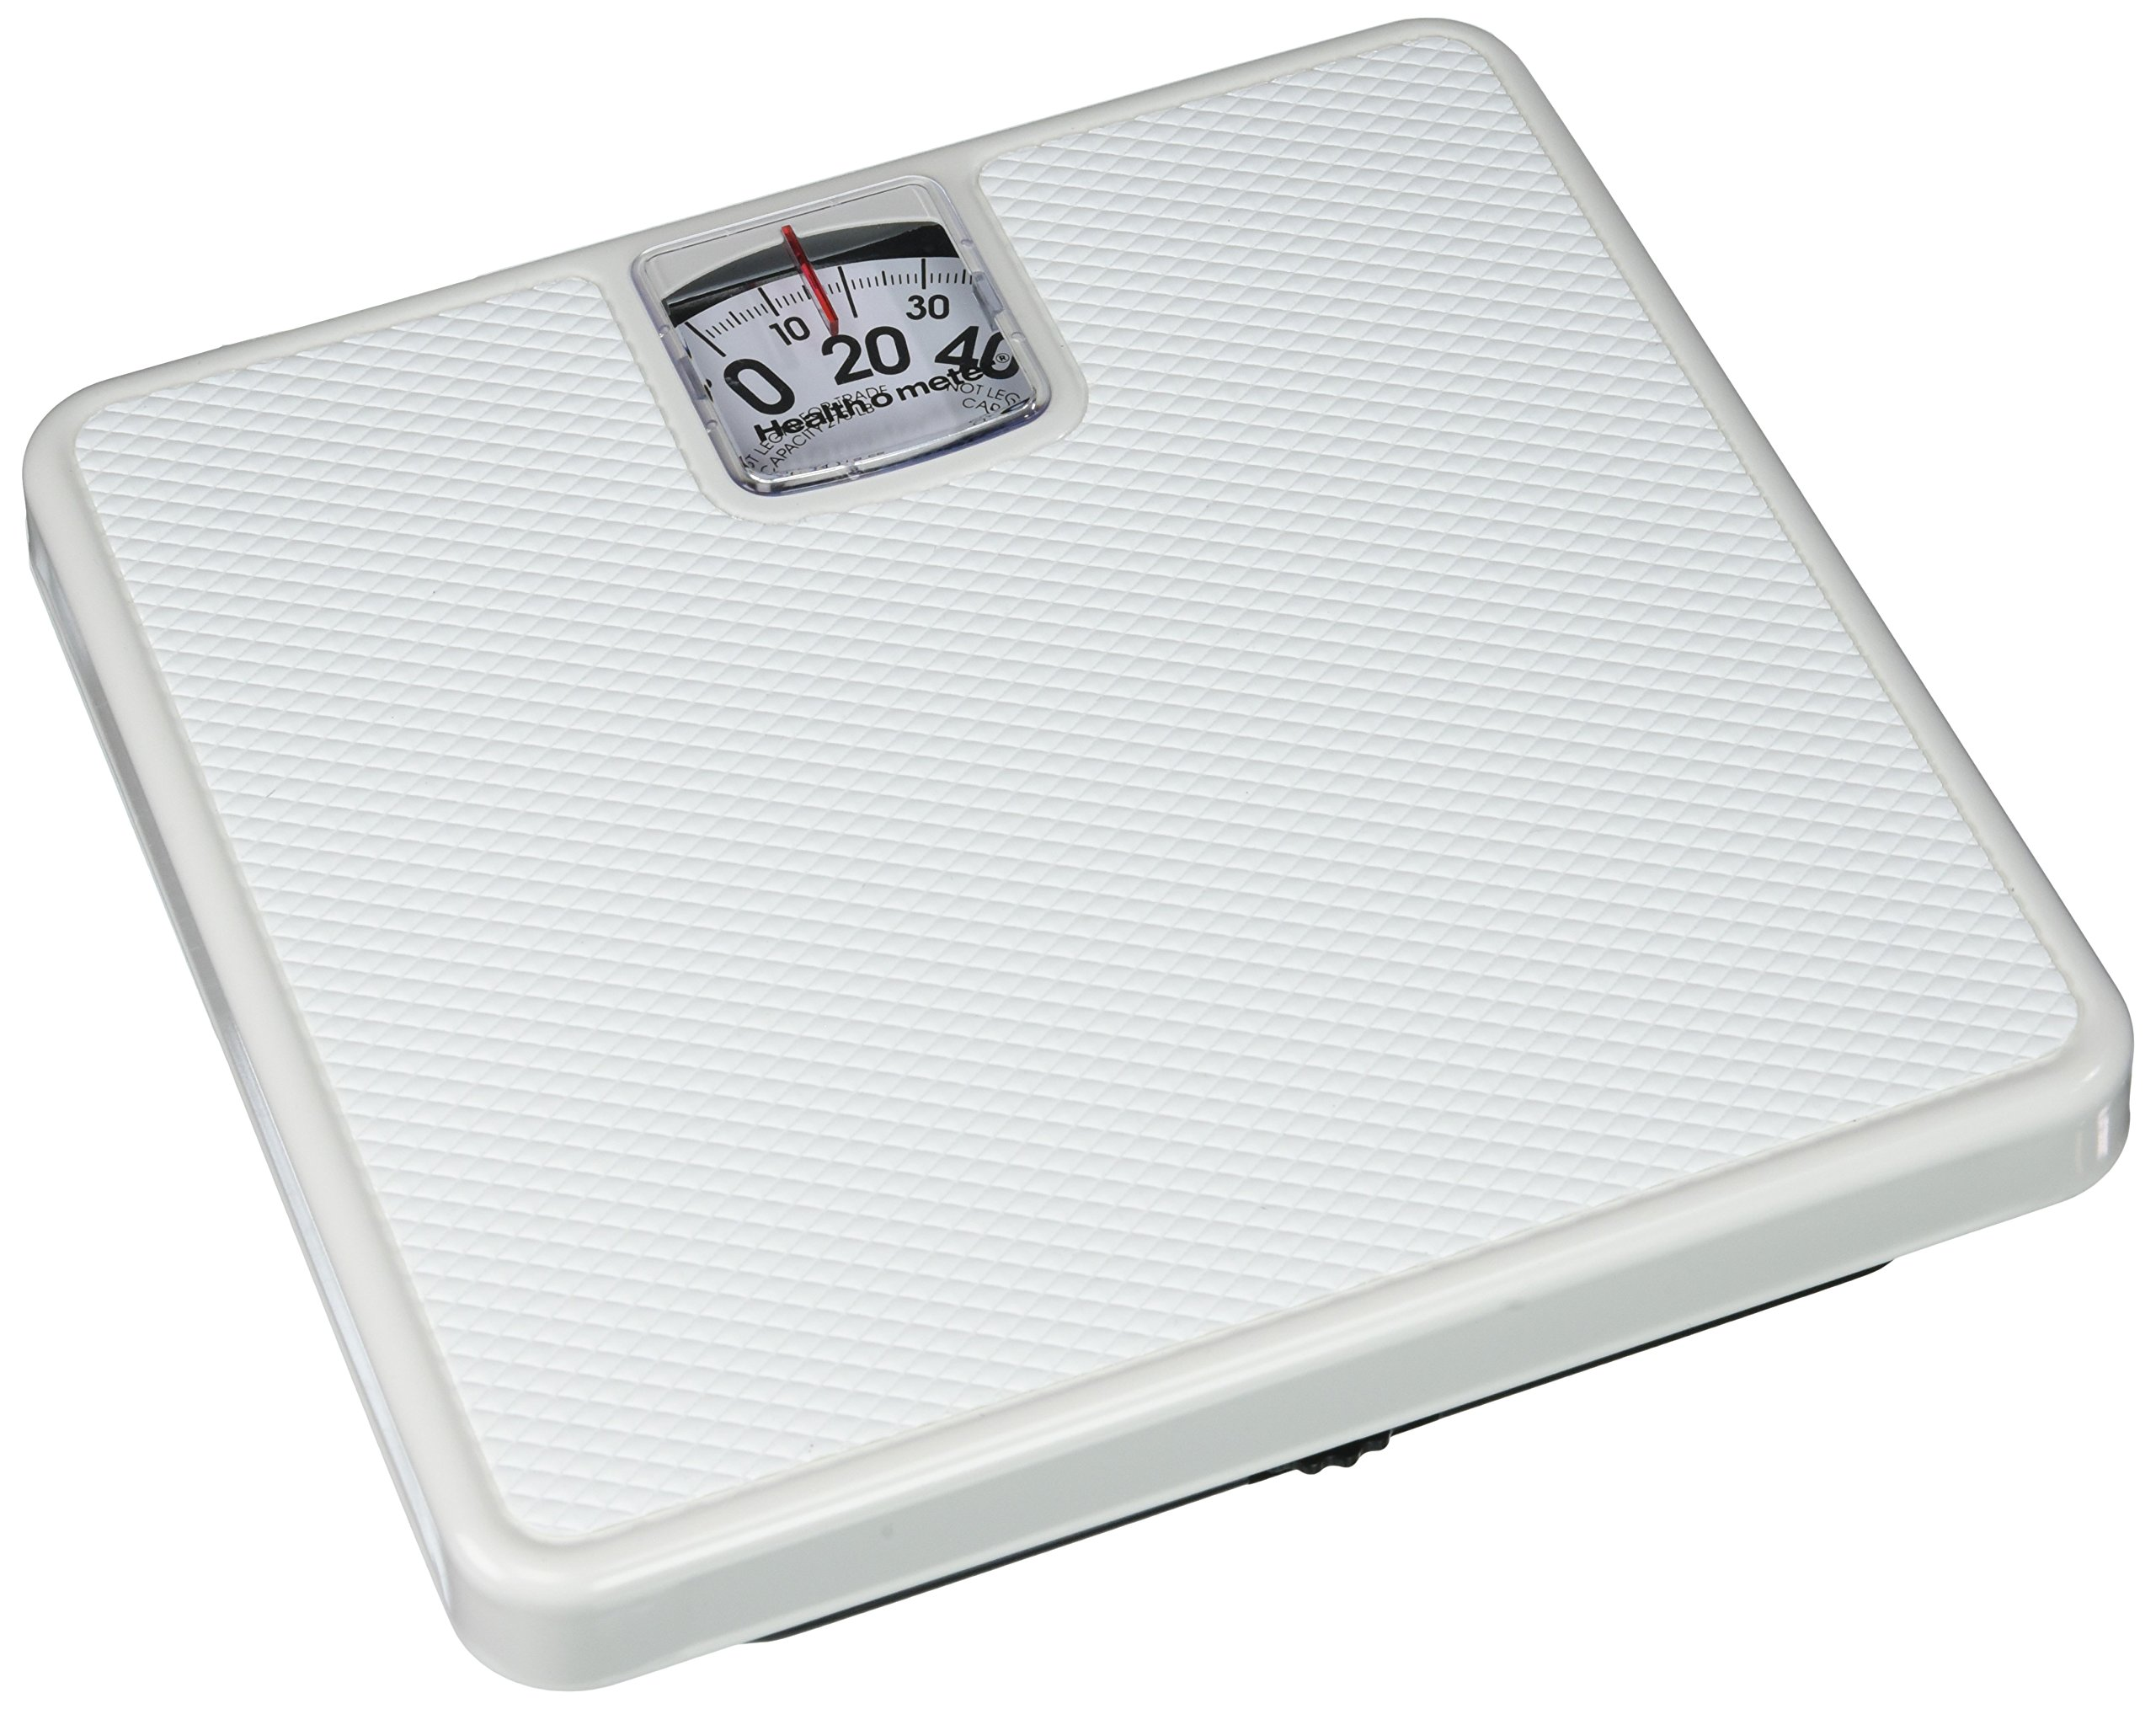 MCK10013700 - Health-o-meter Floor Scale Health O Meter Mechanical 270 lbs.